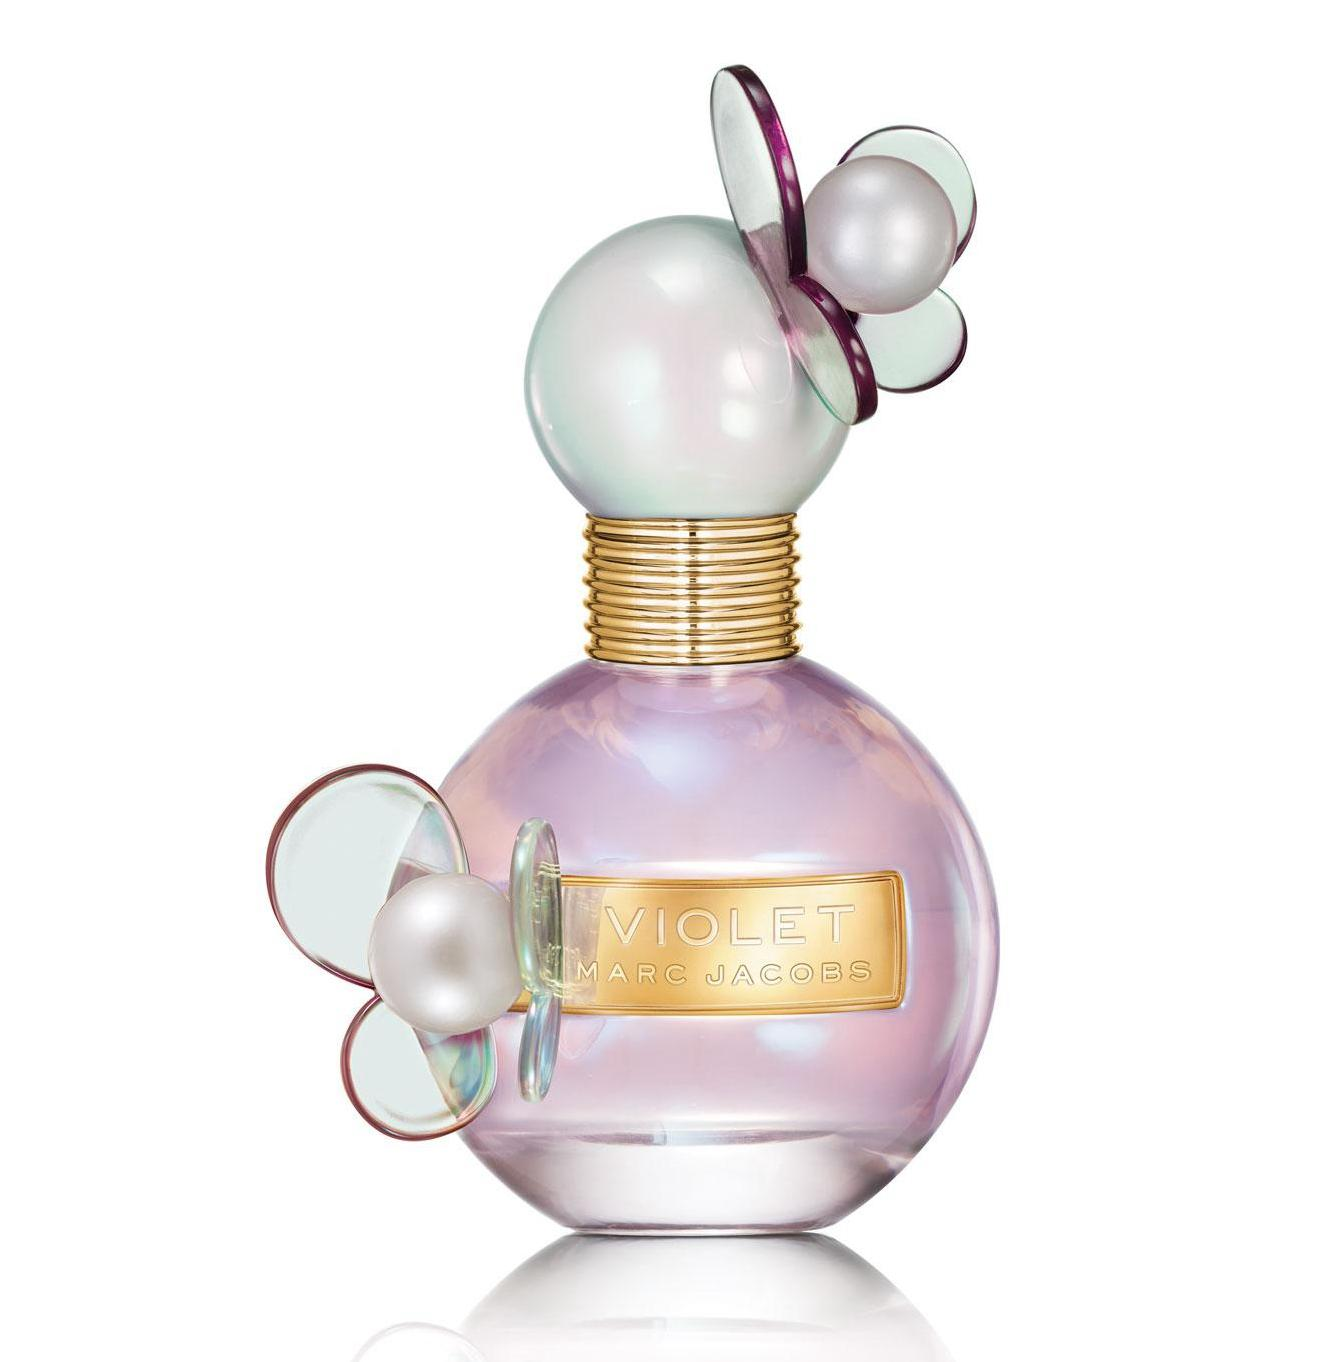 New ReleaseMarcs Jacobs launched new Marc Jacobs Violet Purfume